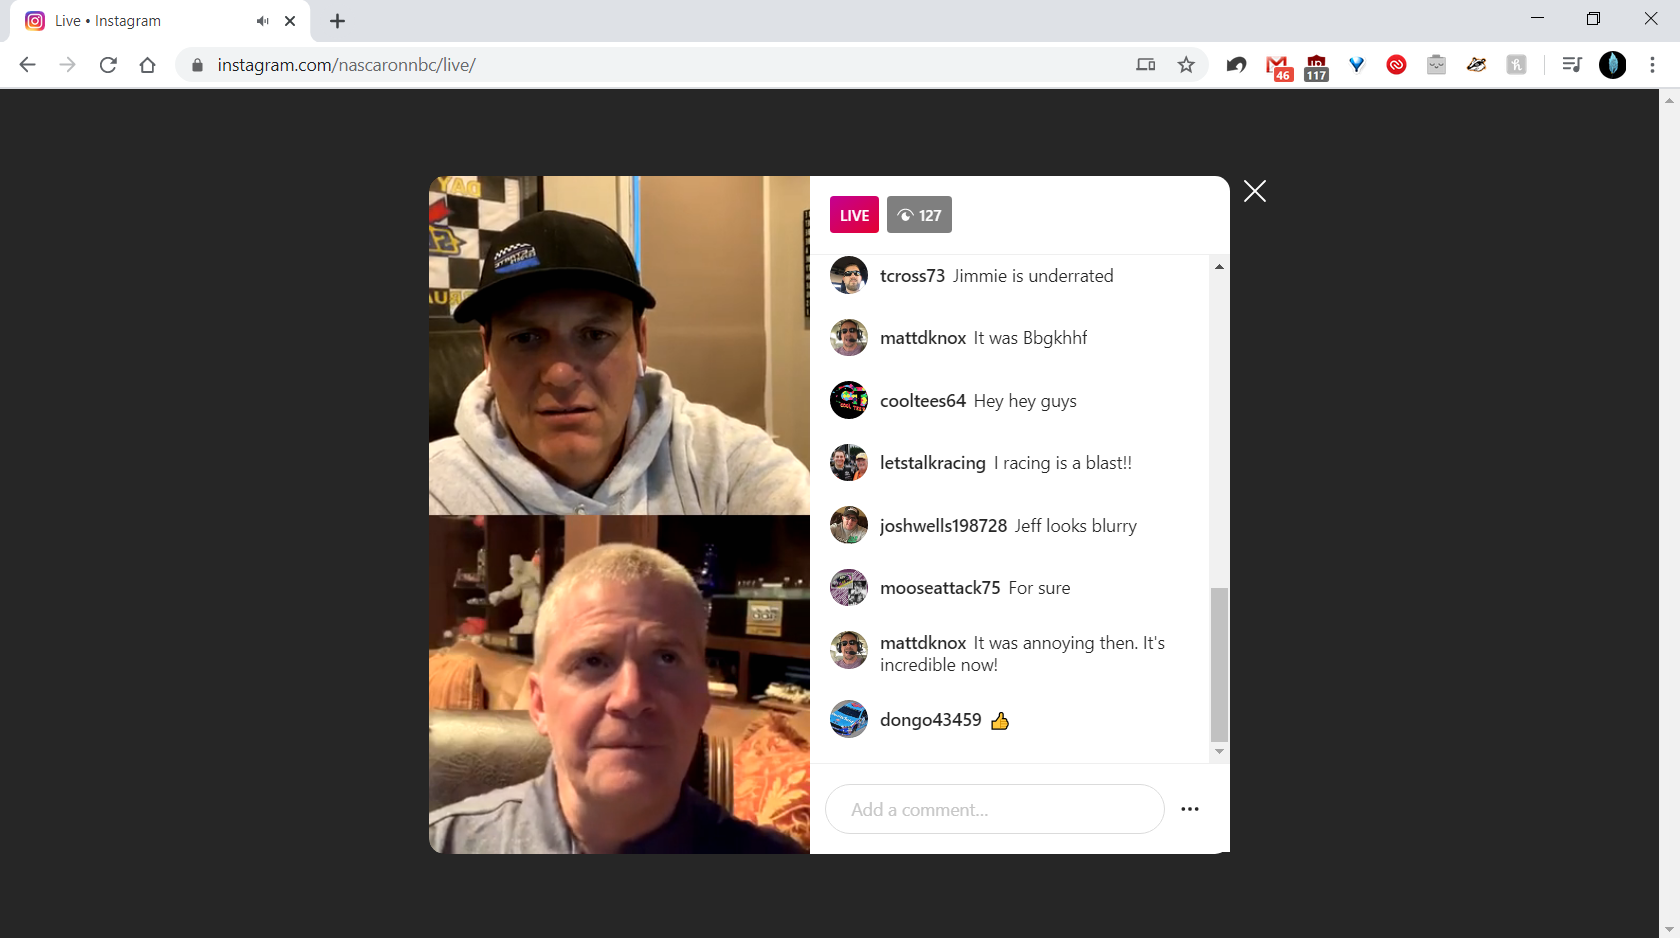 20200413.Instagram-Live-broadcasts-can-now-be-watched-on-the-web-02.png